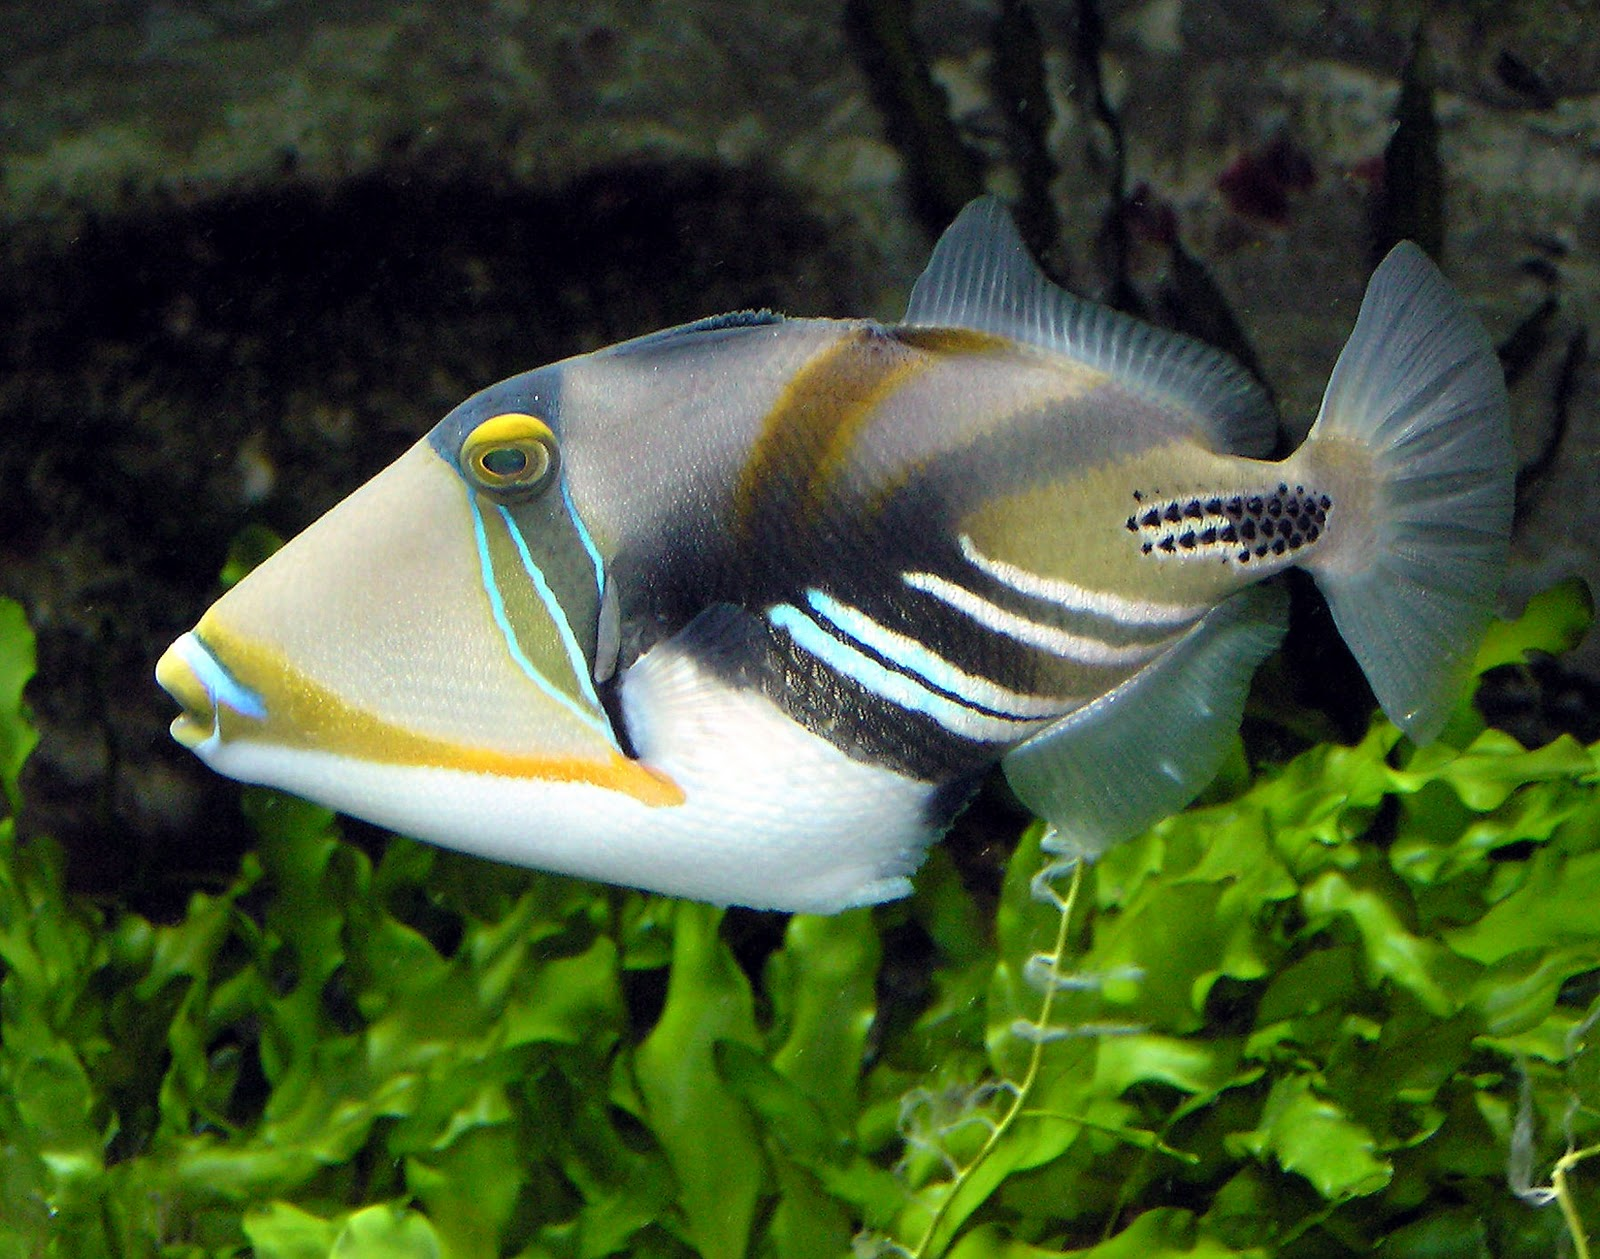 http://1.bp.blogspot.com/-y0kmULIQRAQ/Tq5okNXcSRI/AAAAAAAADN0/JRE-amP9KoI/s1600/Beautiful_fish_pictures_wallpapers_triggerfish_Animals_Under_water_www.picturepool.blogspot.com_aqu.jpg